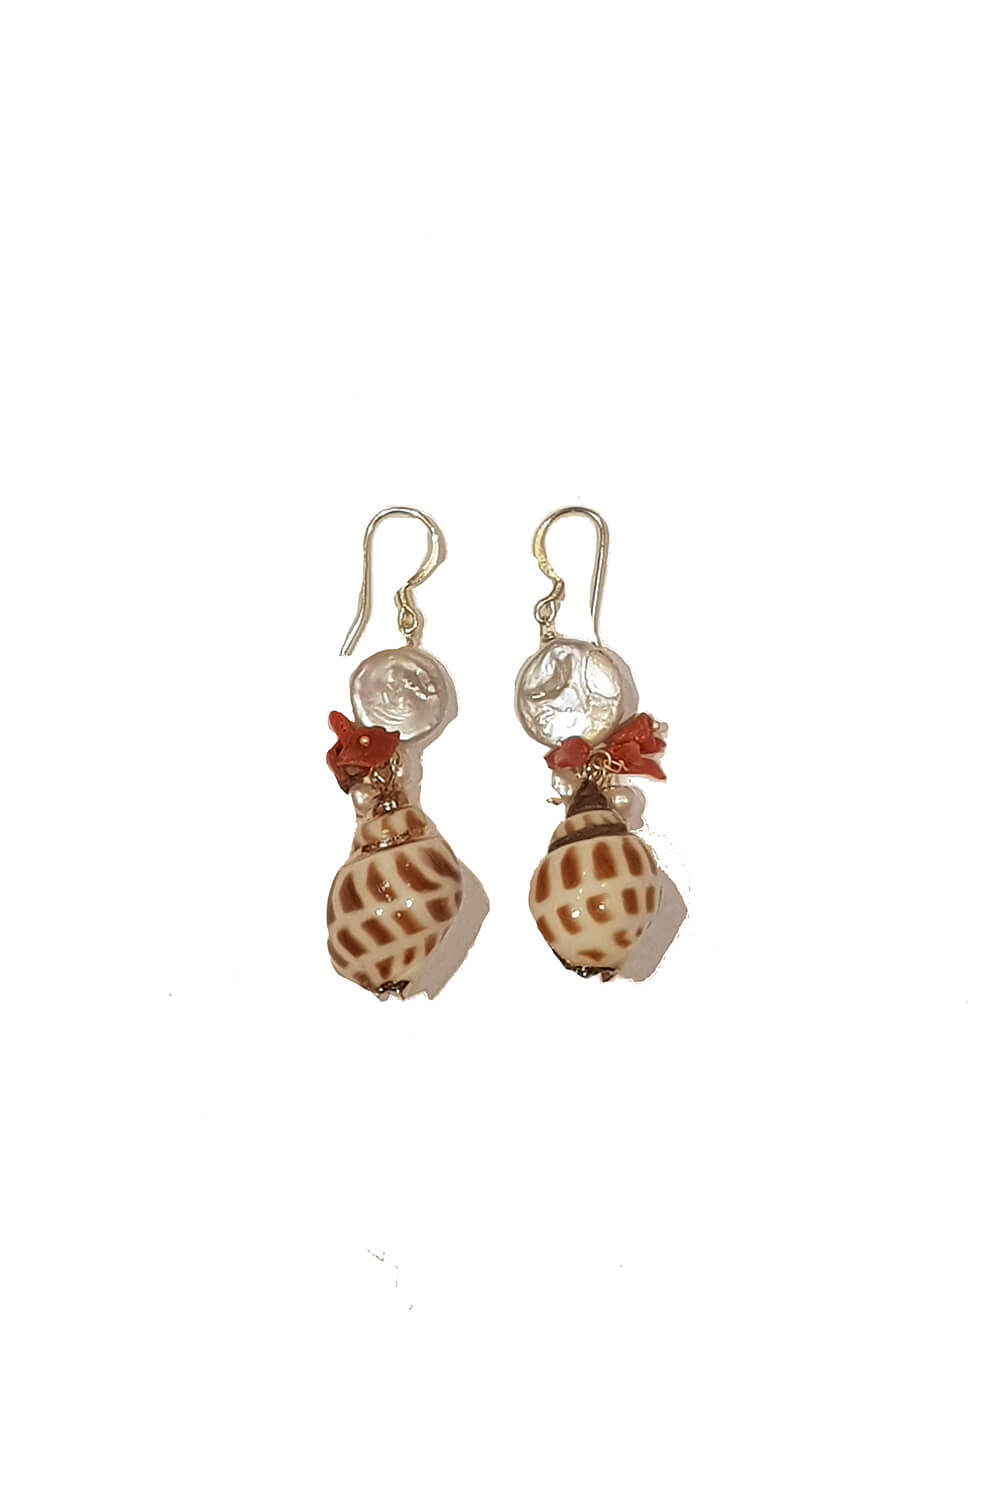 earrings with nacre, corals and shells AMETI